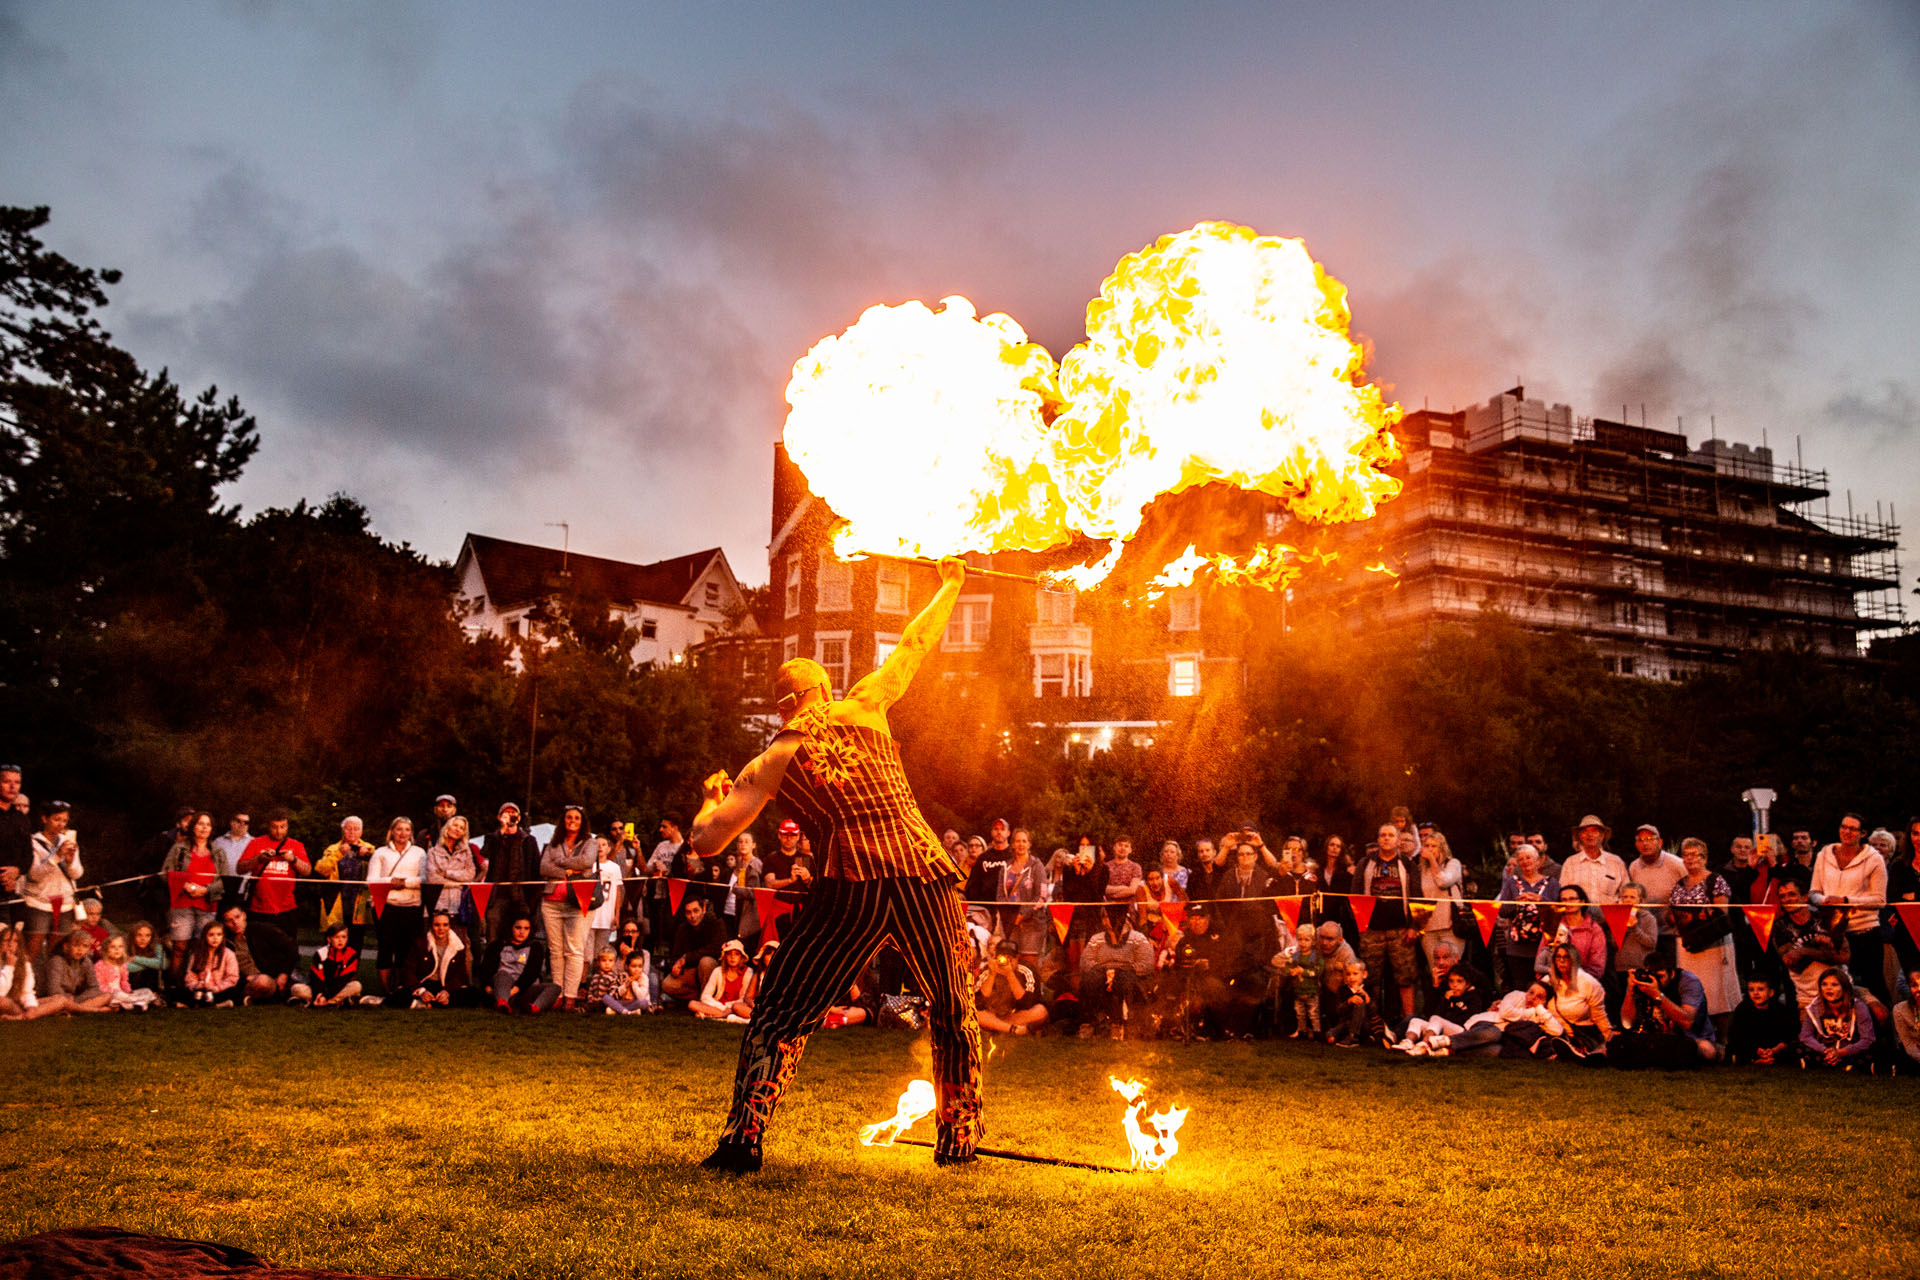 Epic fire performance for families in the Lower Gardens